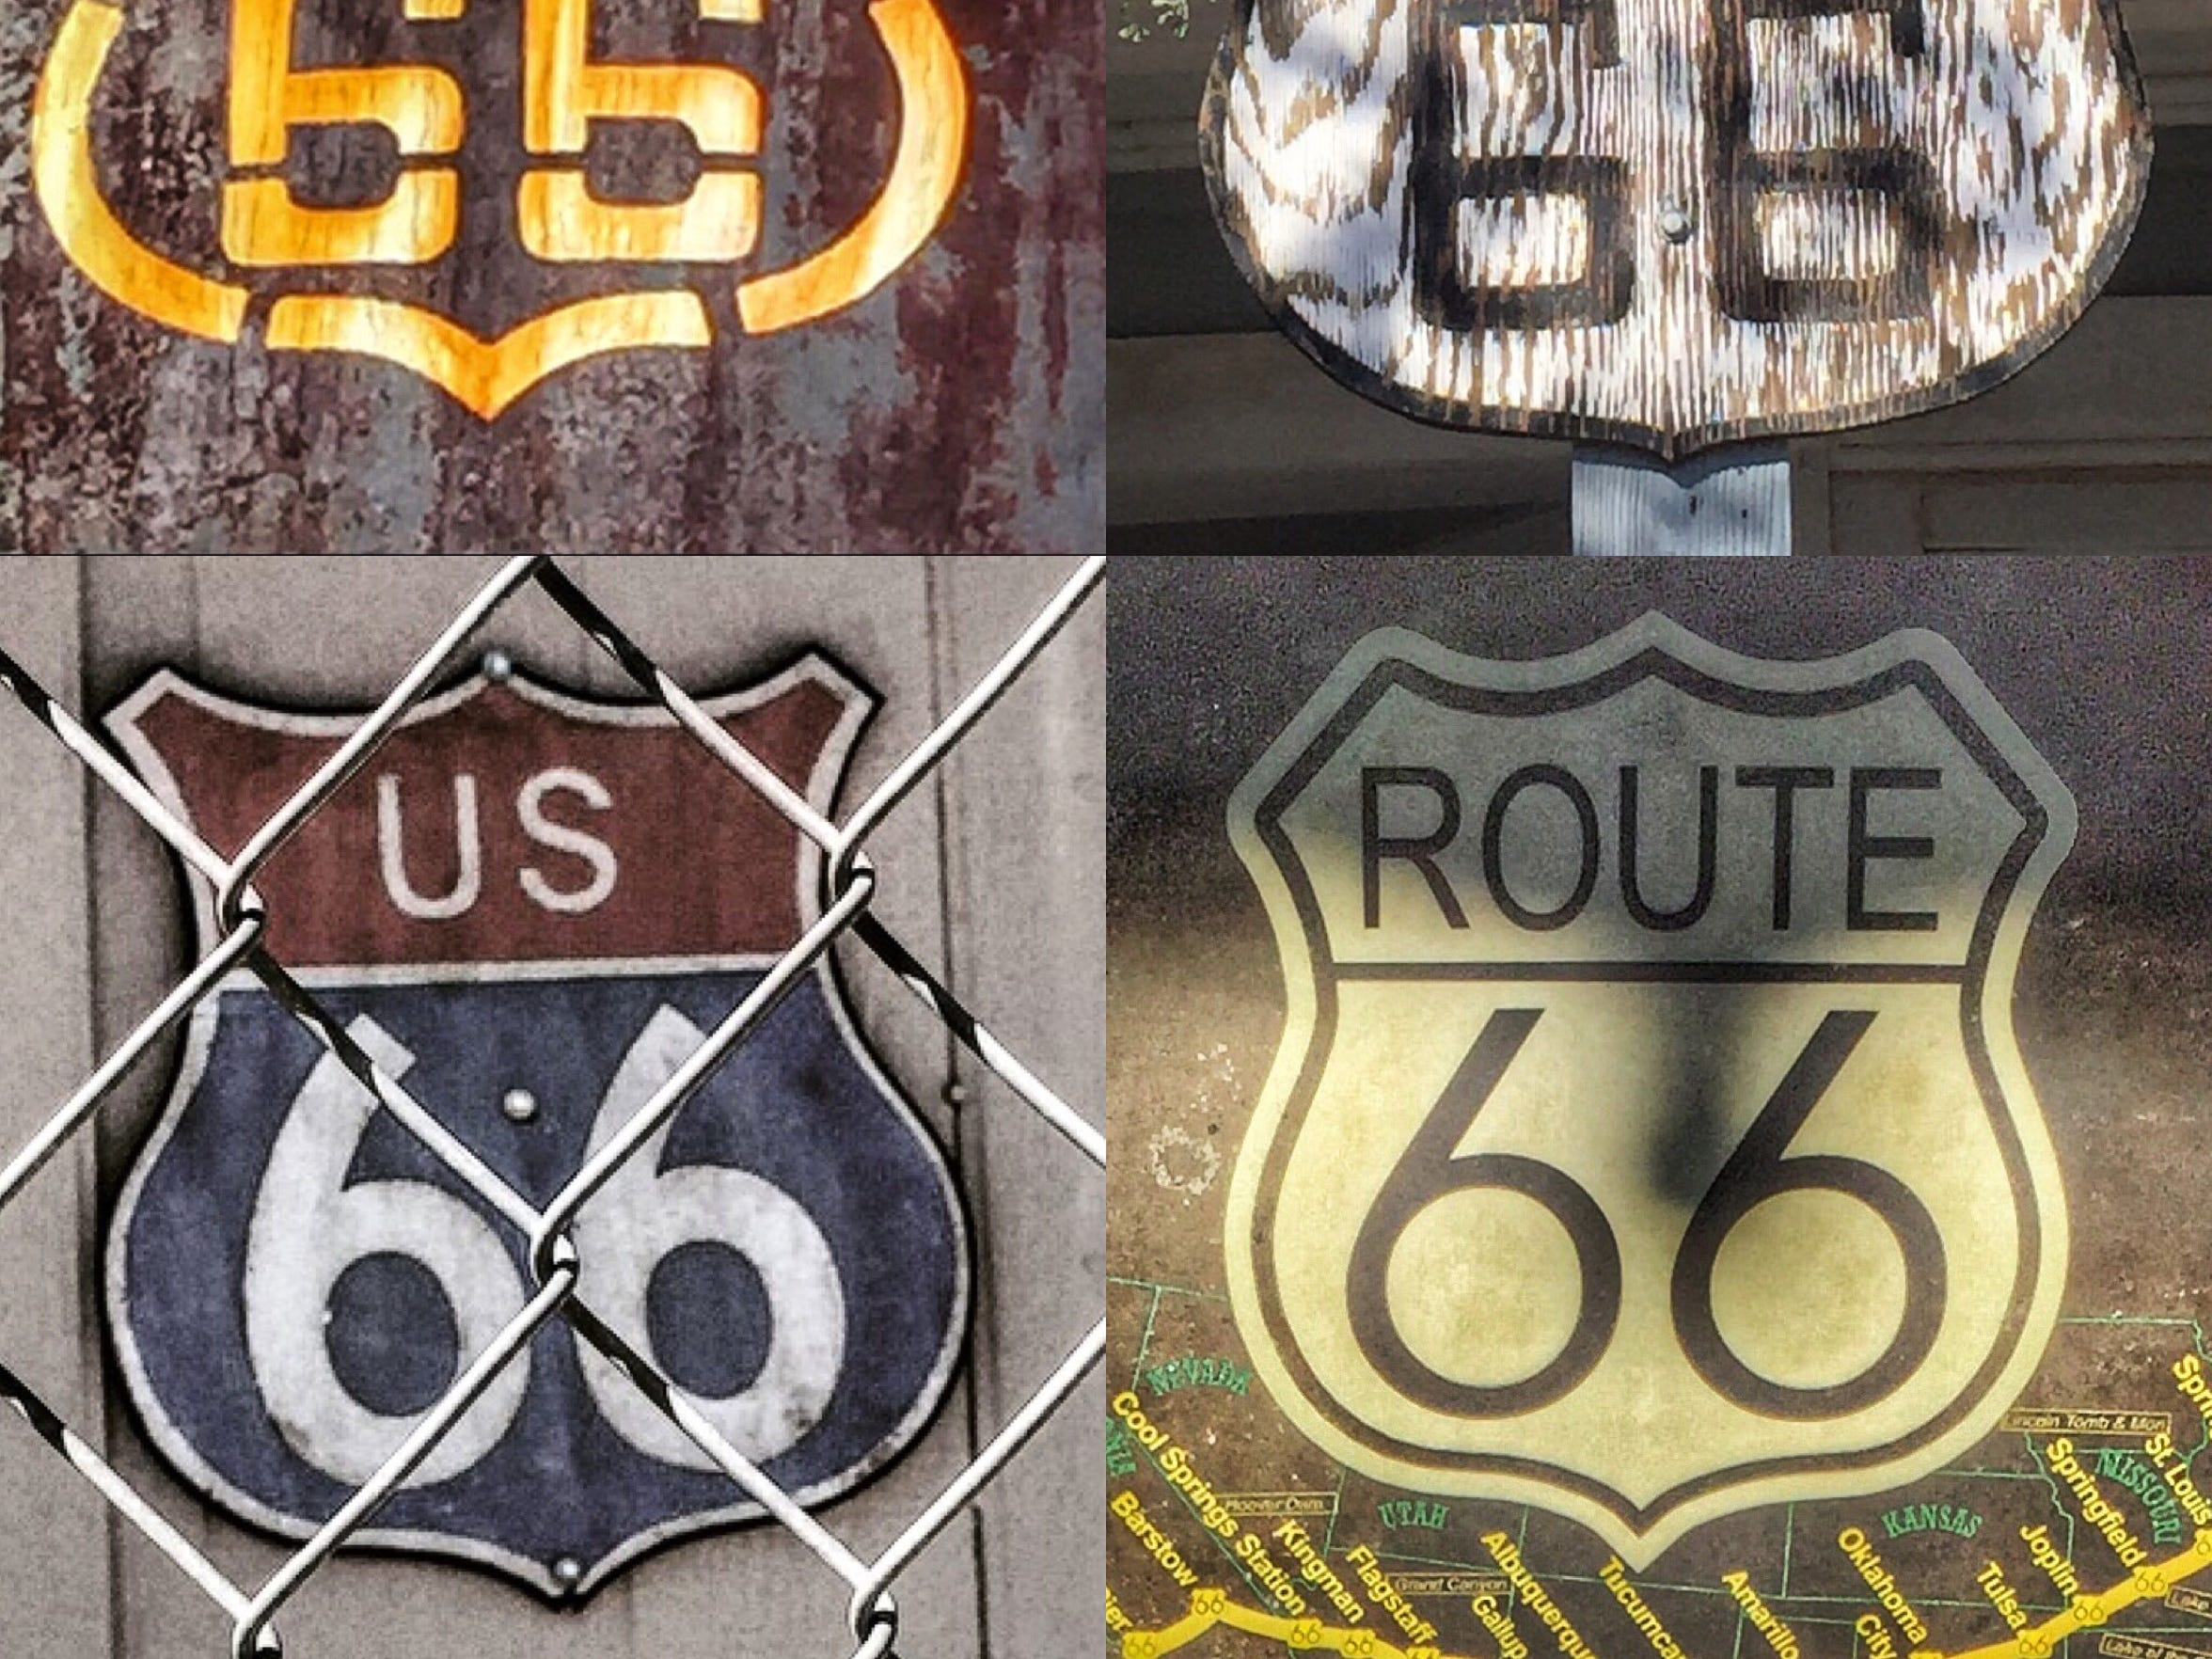 Cruising along Route 66, you'll see markers in many forms.